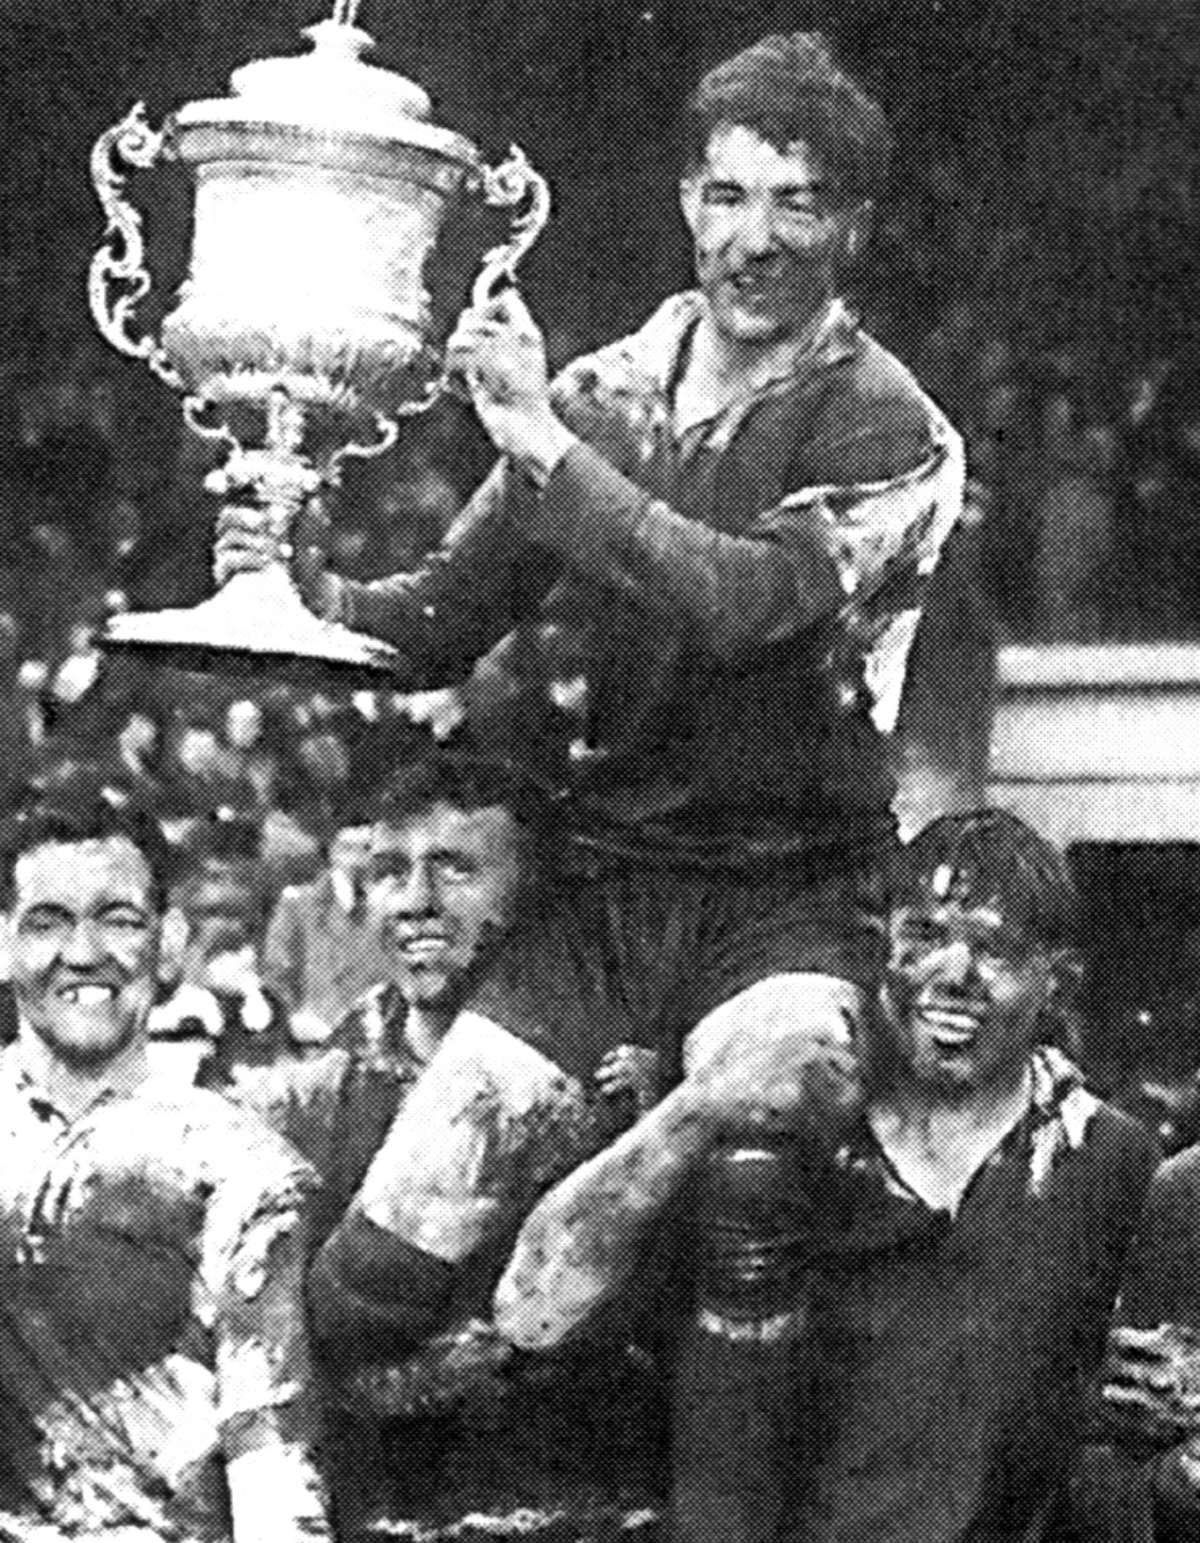 Albert Naughton, the last Warrington captain to lift the Championship trophy in 1955